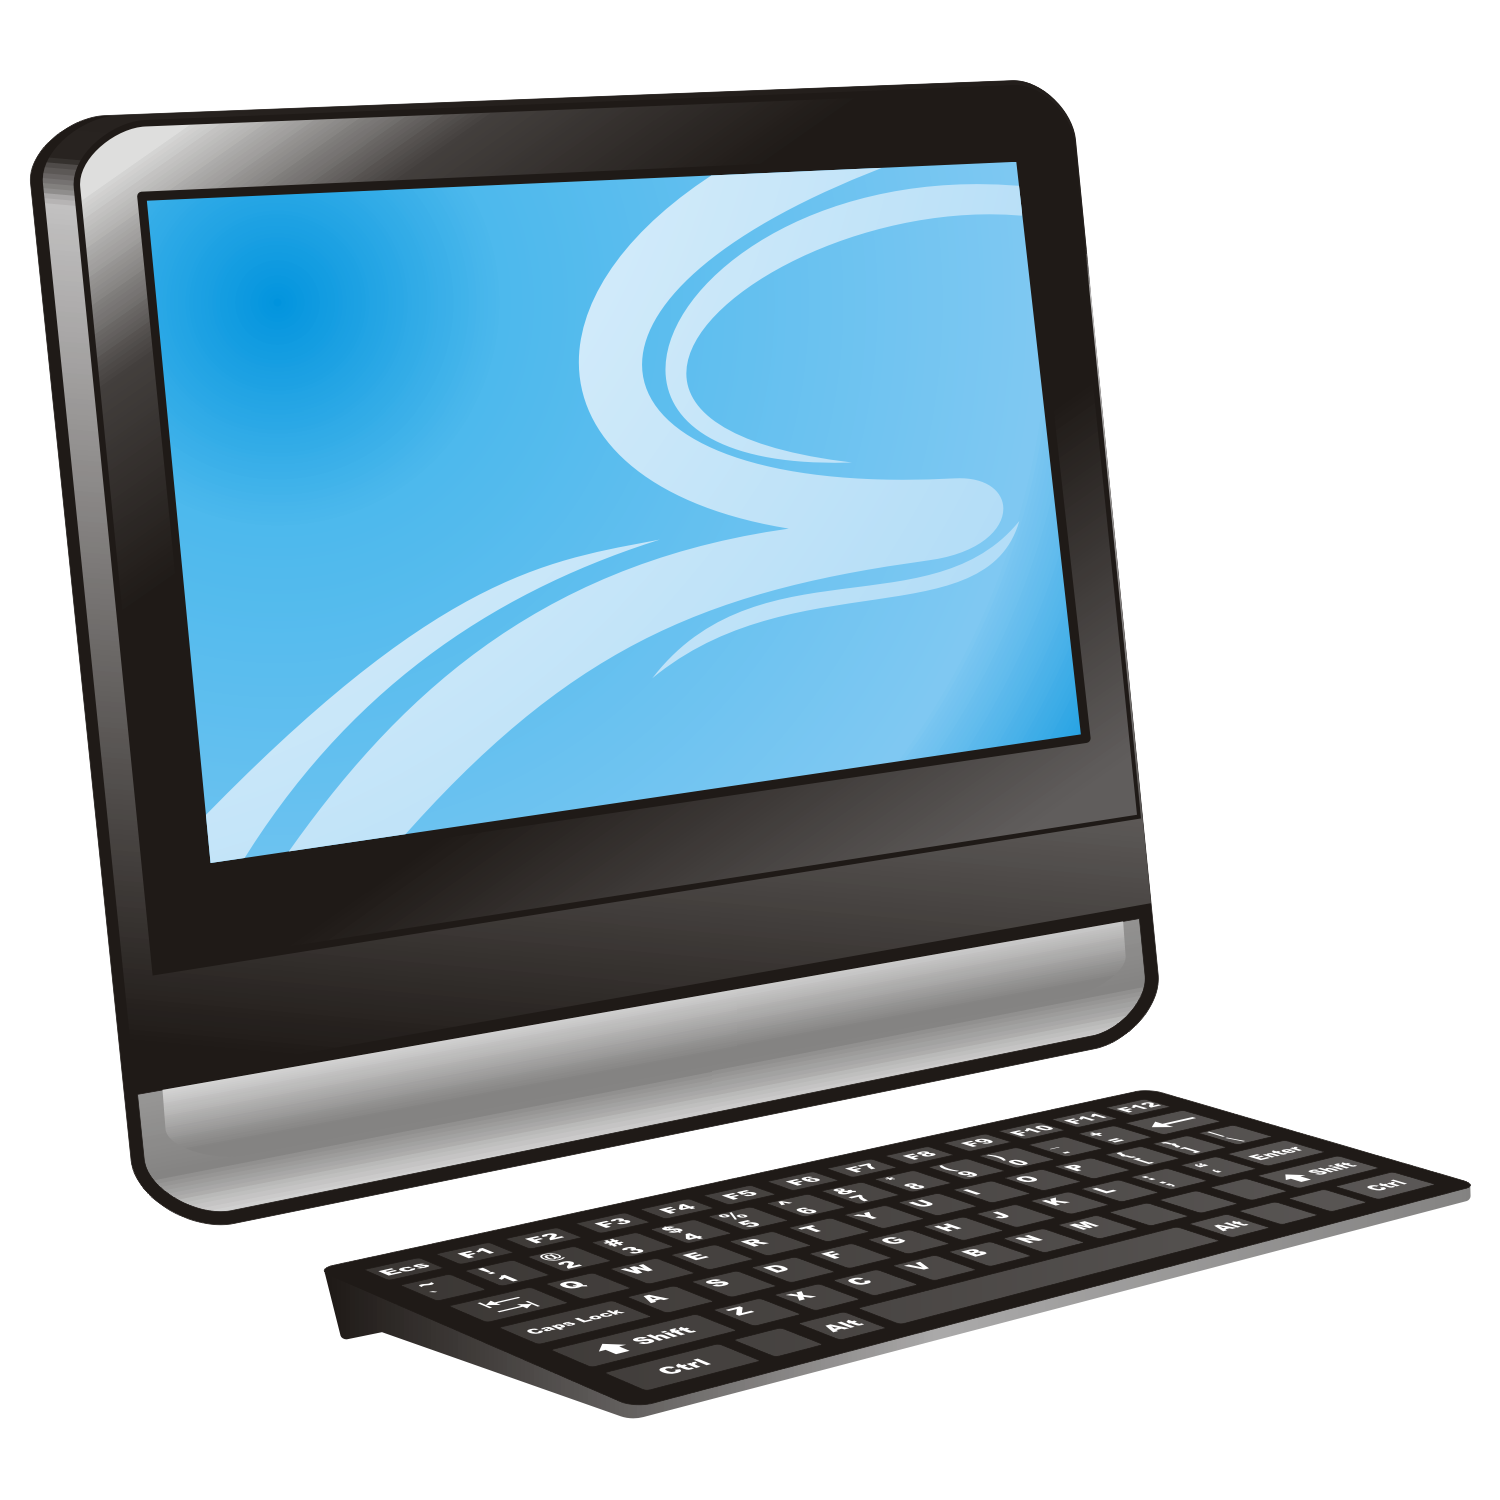 11 Computer Icon Vector Free Images